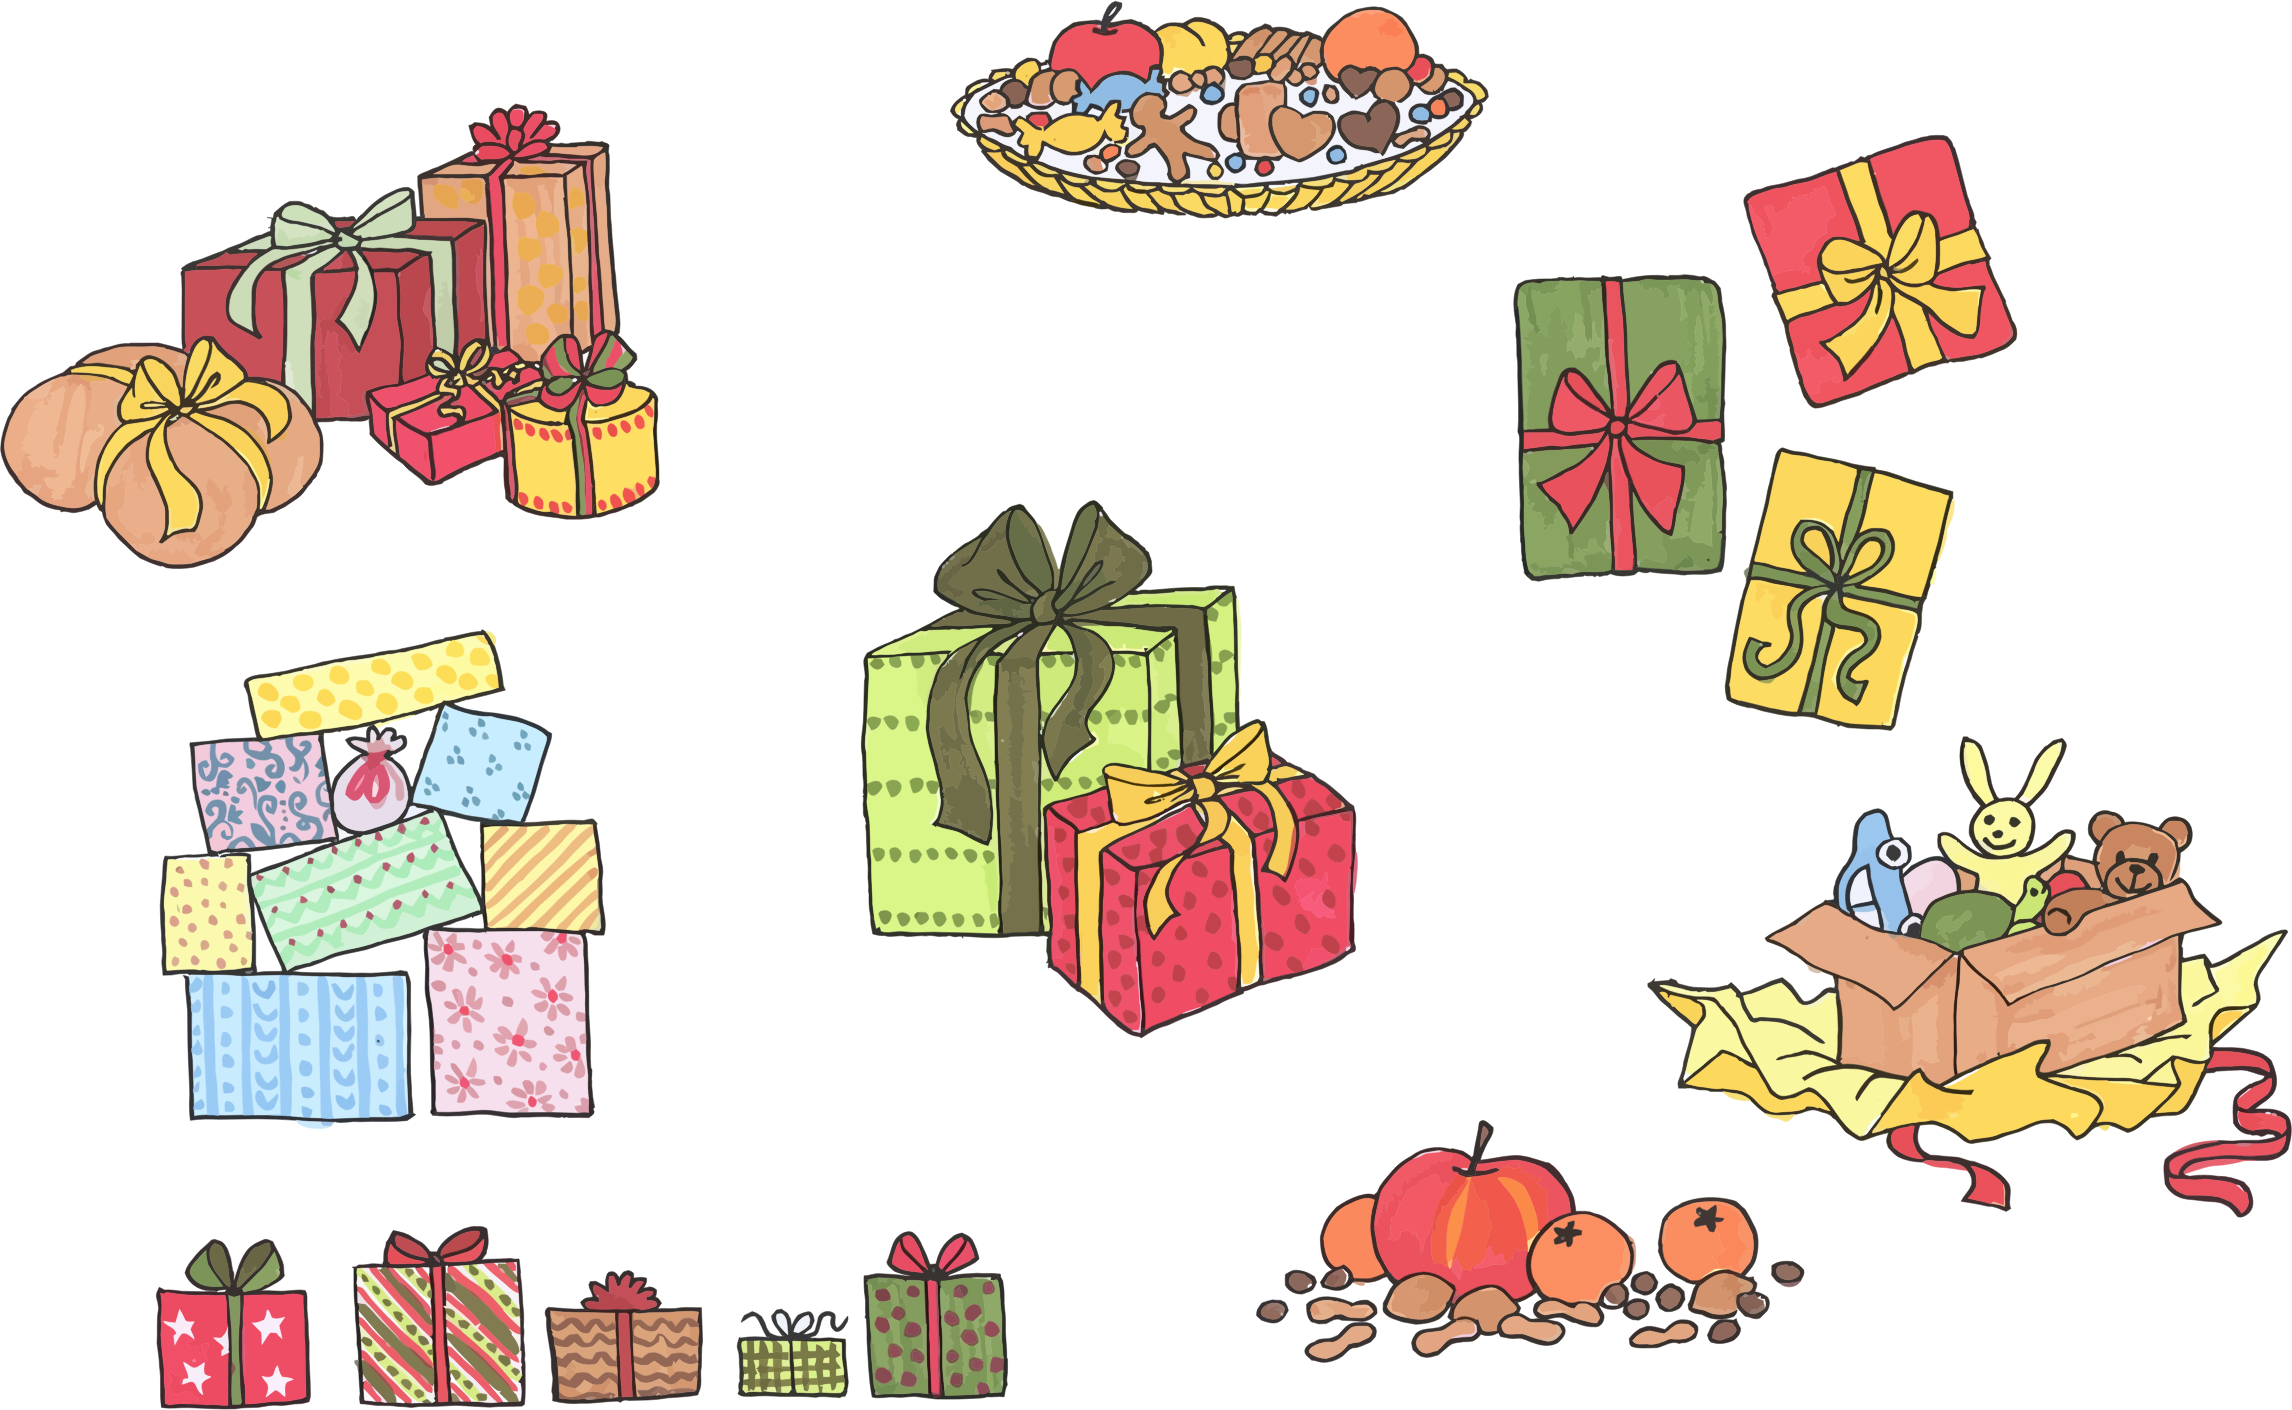 Assortment Of Gifts And Presents by GDJ